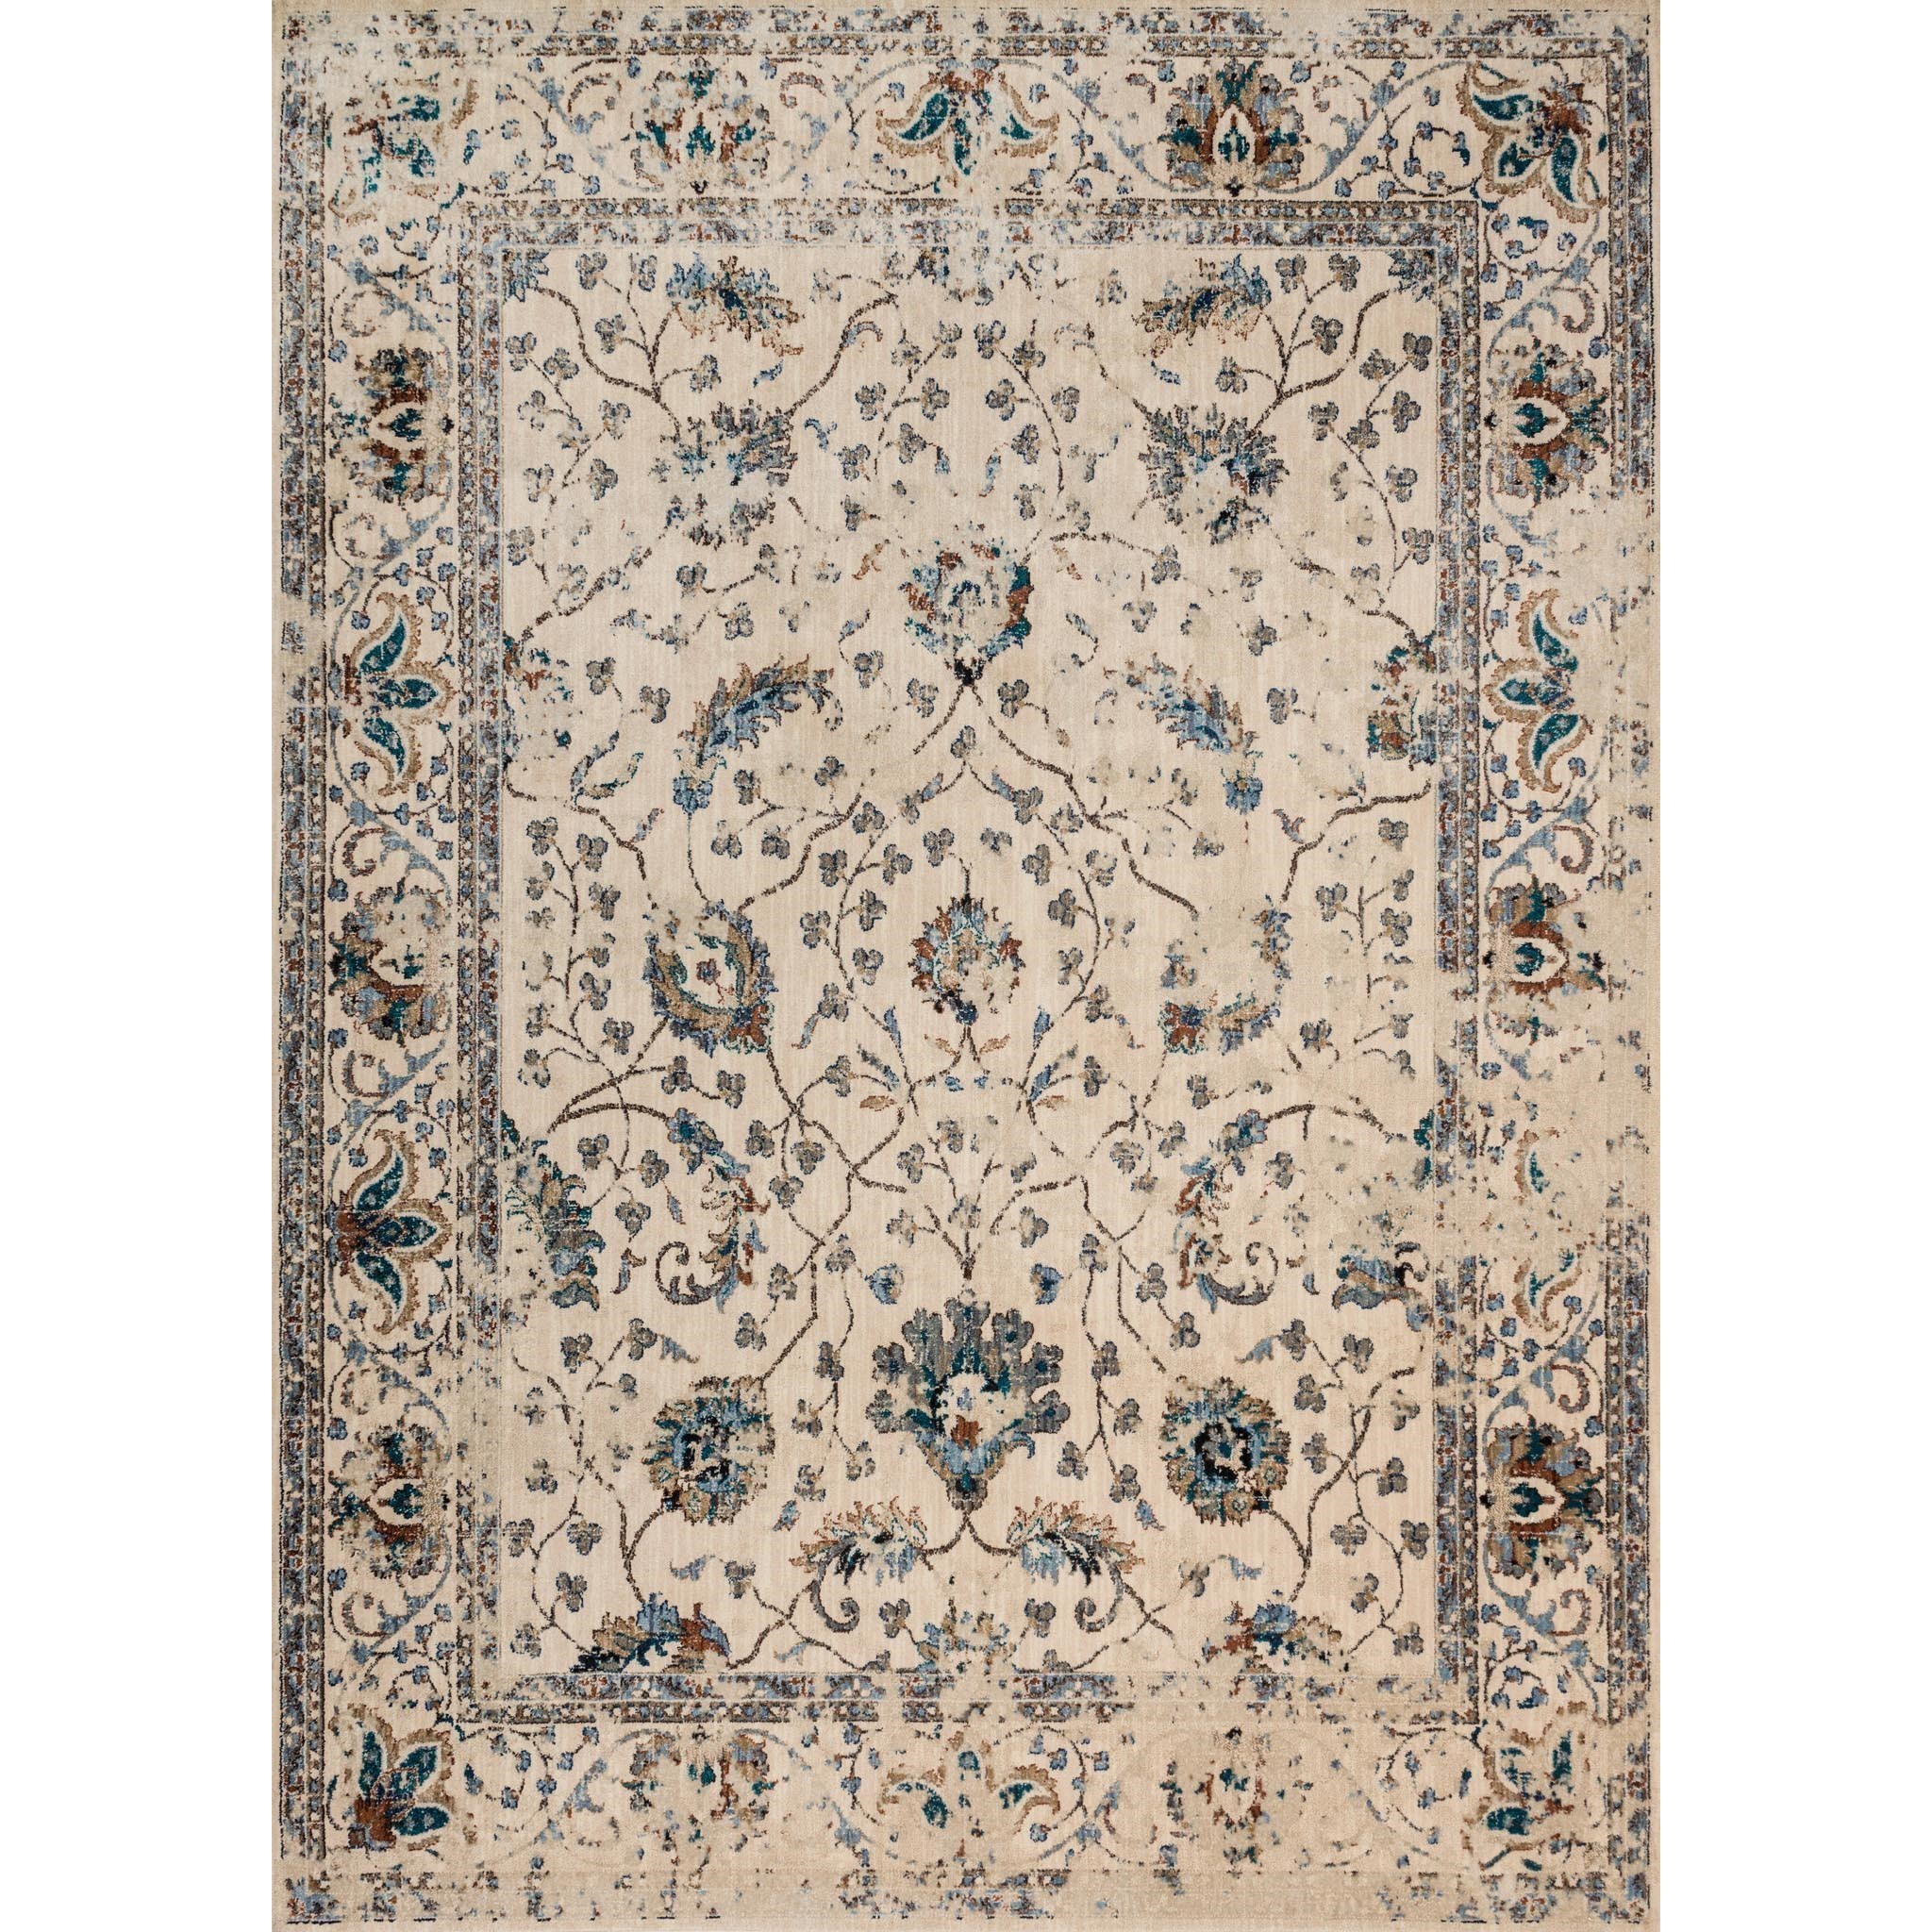 """Kivi 6' 7"""" X 9' 2"""" Rectangle Rug by Magnolia Home by Joanna Gaines for Loloi at Belfort Furniture"""